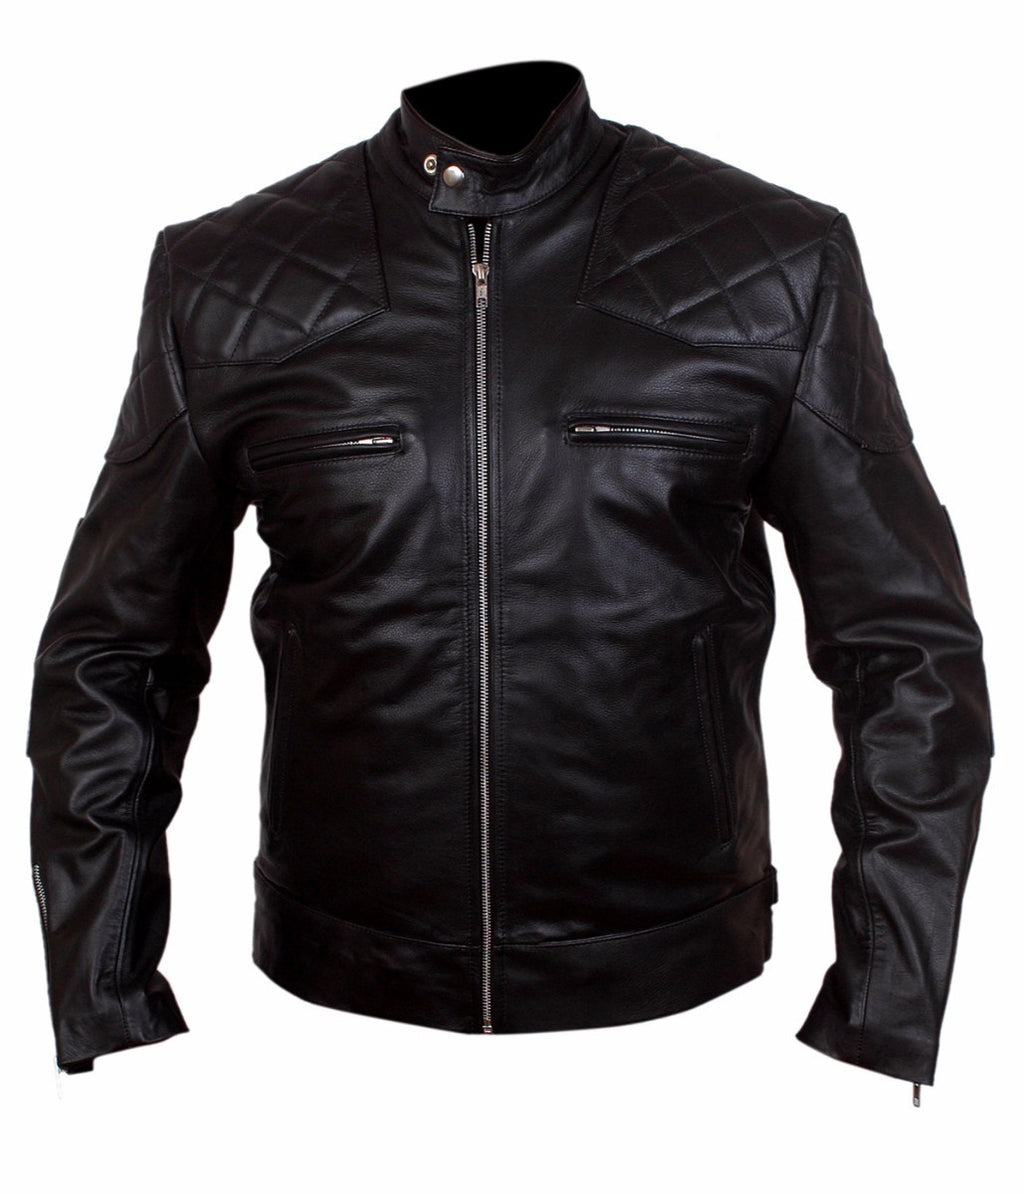 Diapo Leather Men's Black Rivet with Shoulder Quilting Center Zip Cowhide Vegetable Tanned Leather Jacket     40% OFF